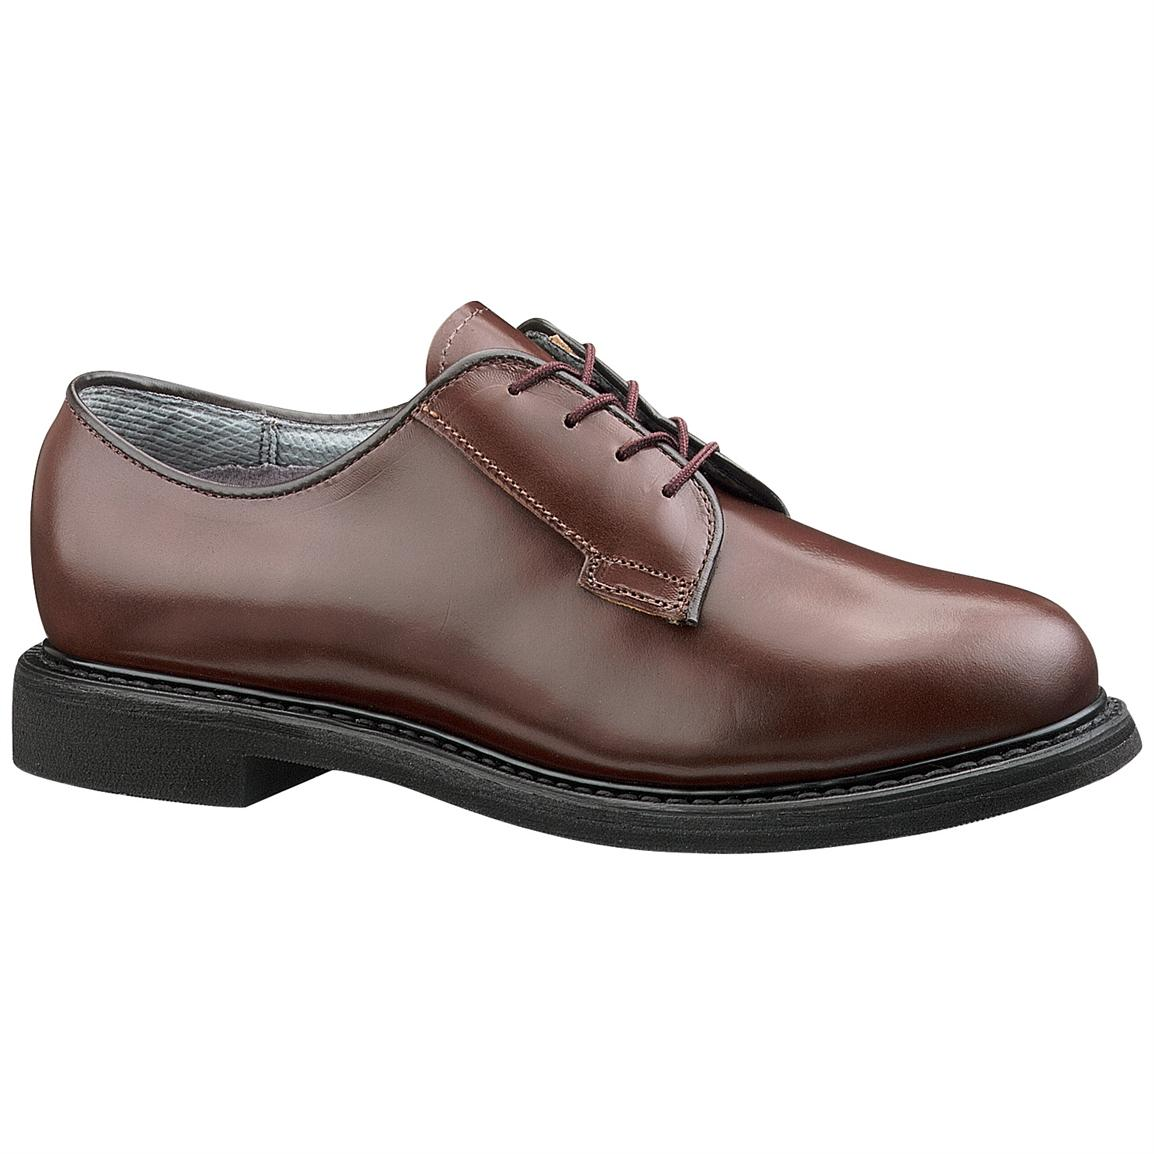 Women's Bates® Lites™ Brown Leather Oxford